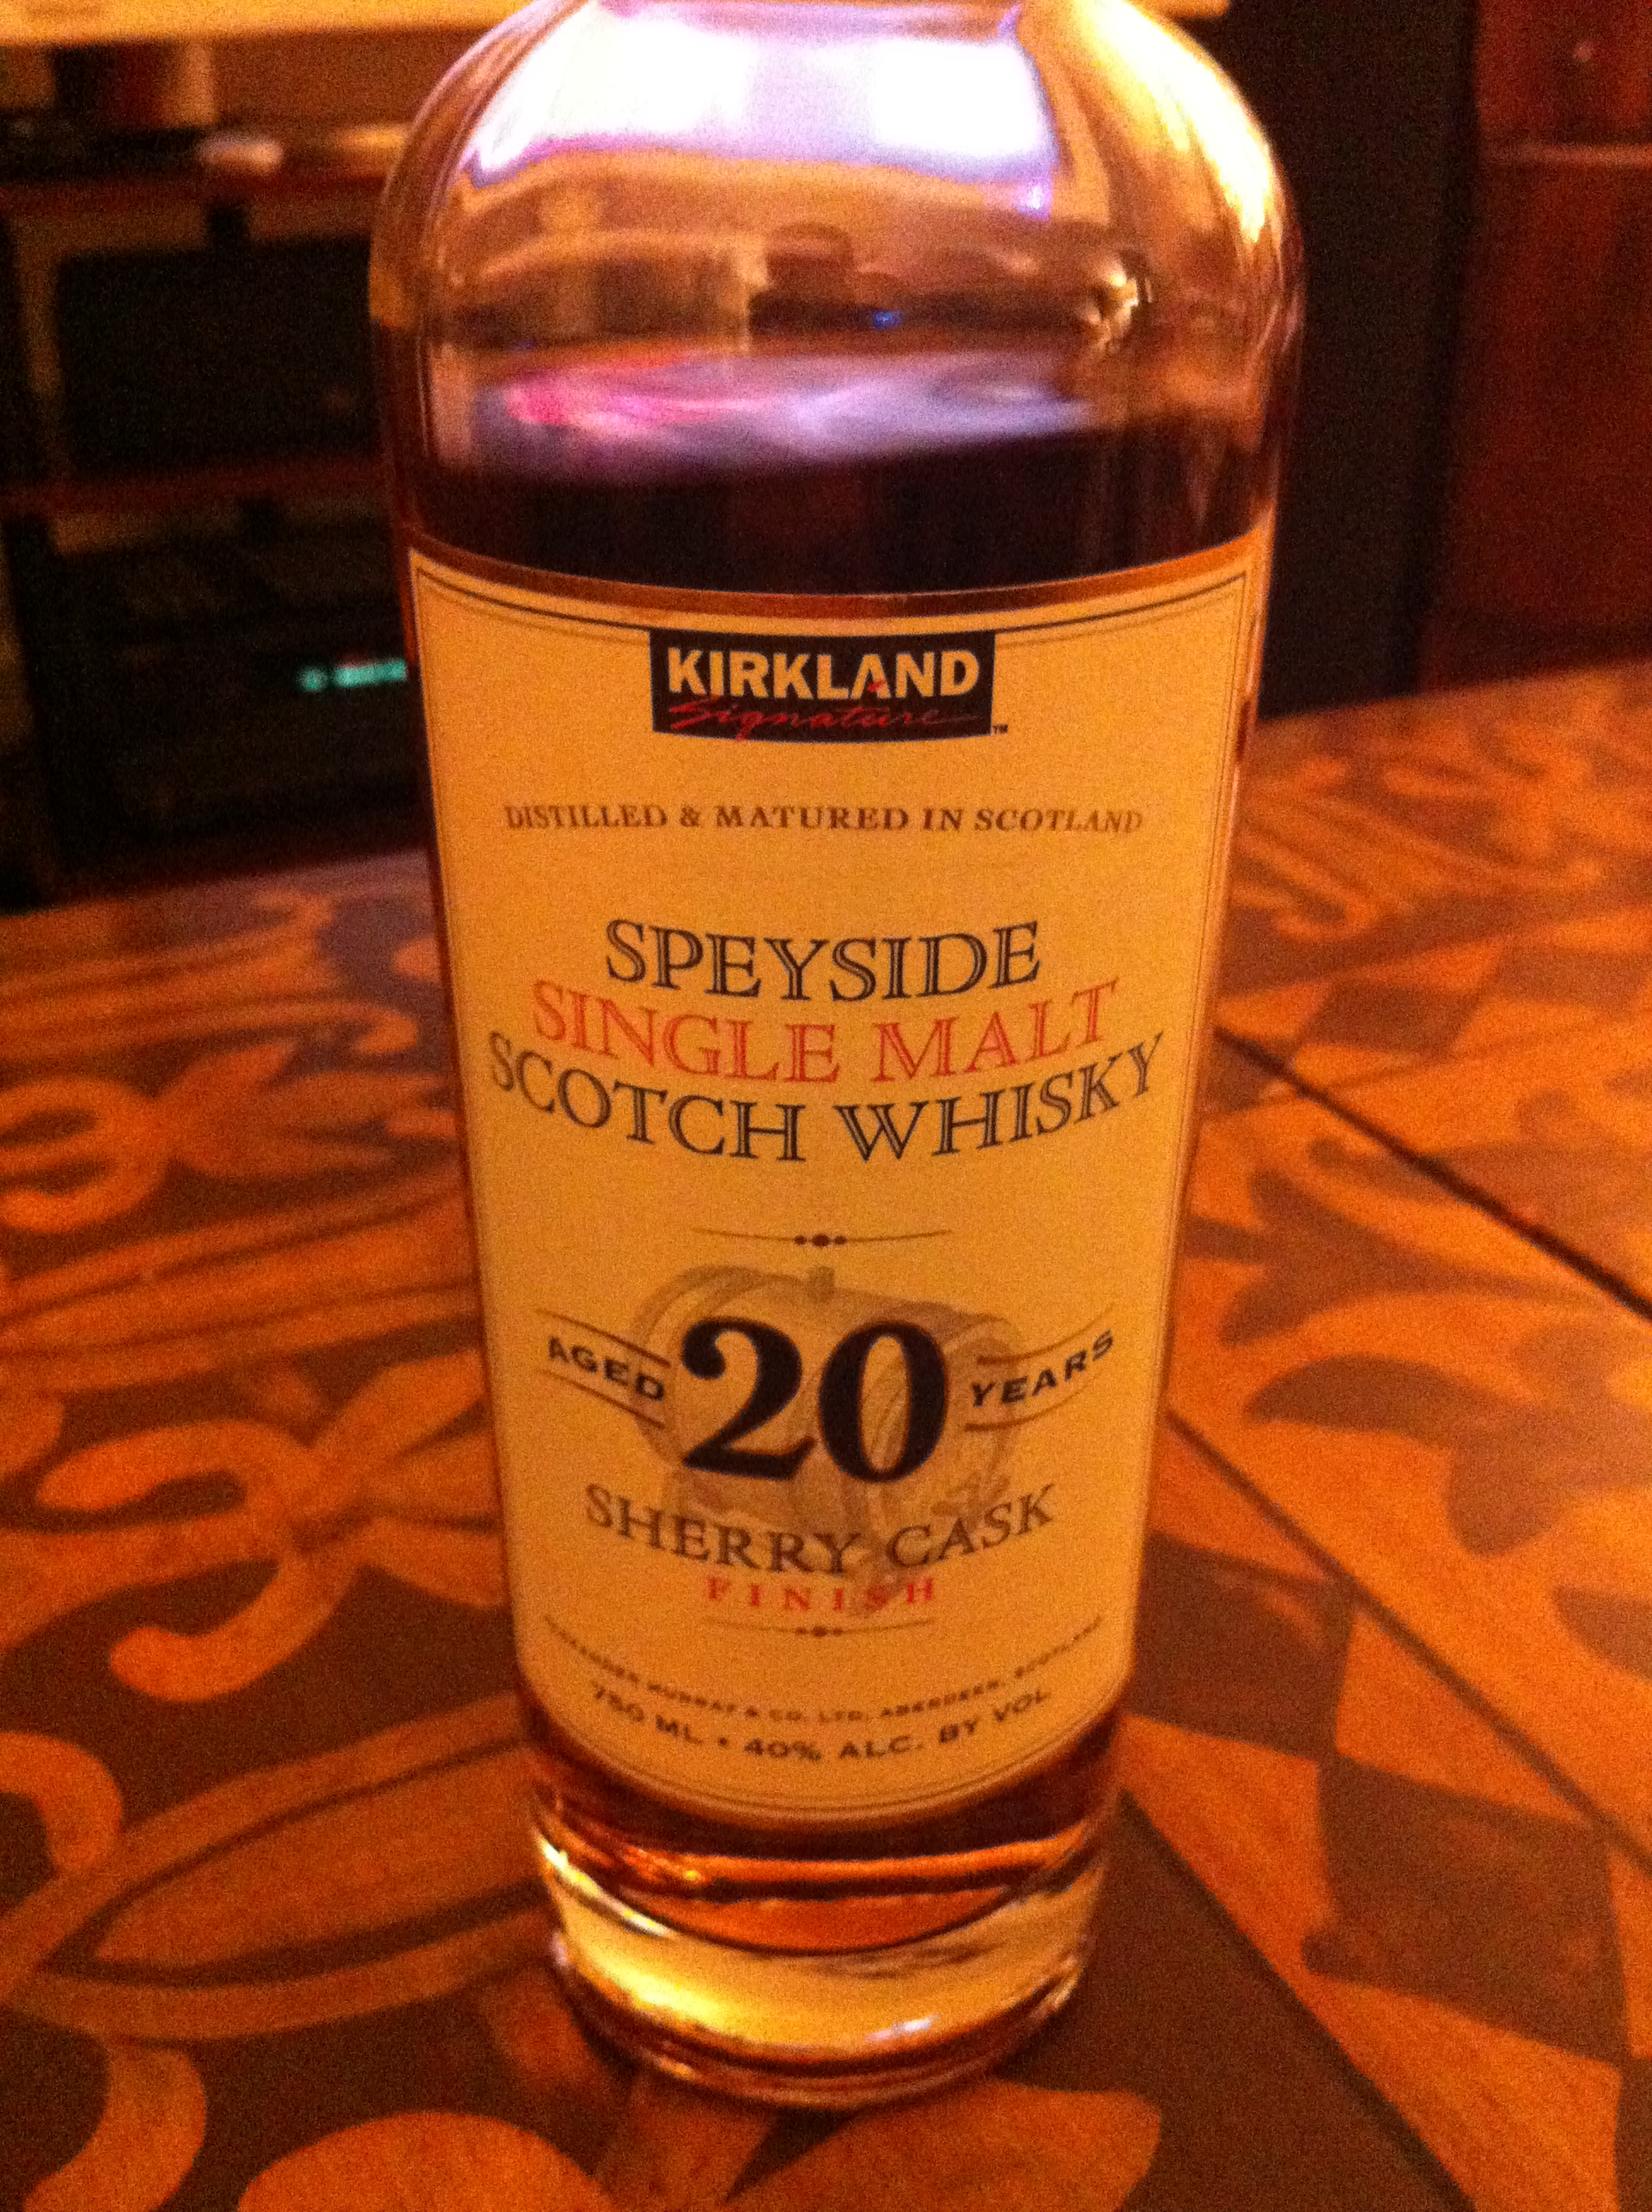 Kirkland Speyside Single Malt Scotch Whisky 20 Years Old Sherry Cask Finish